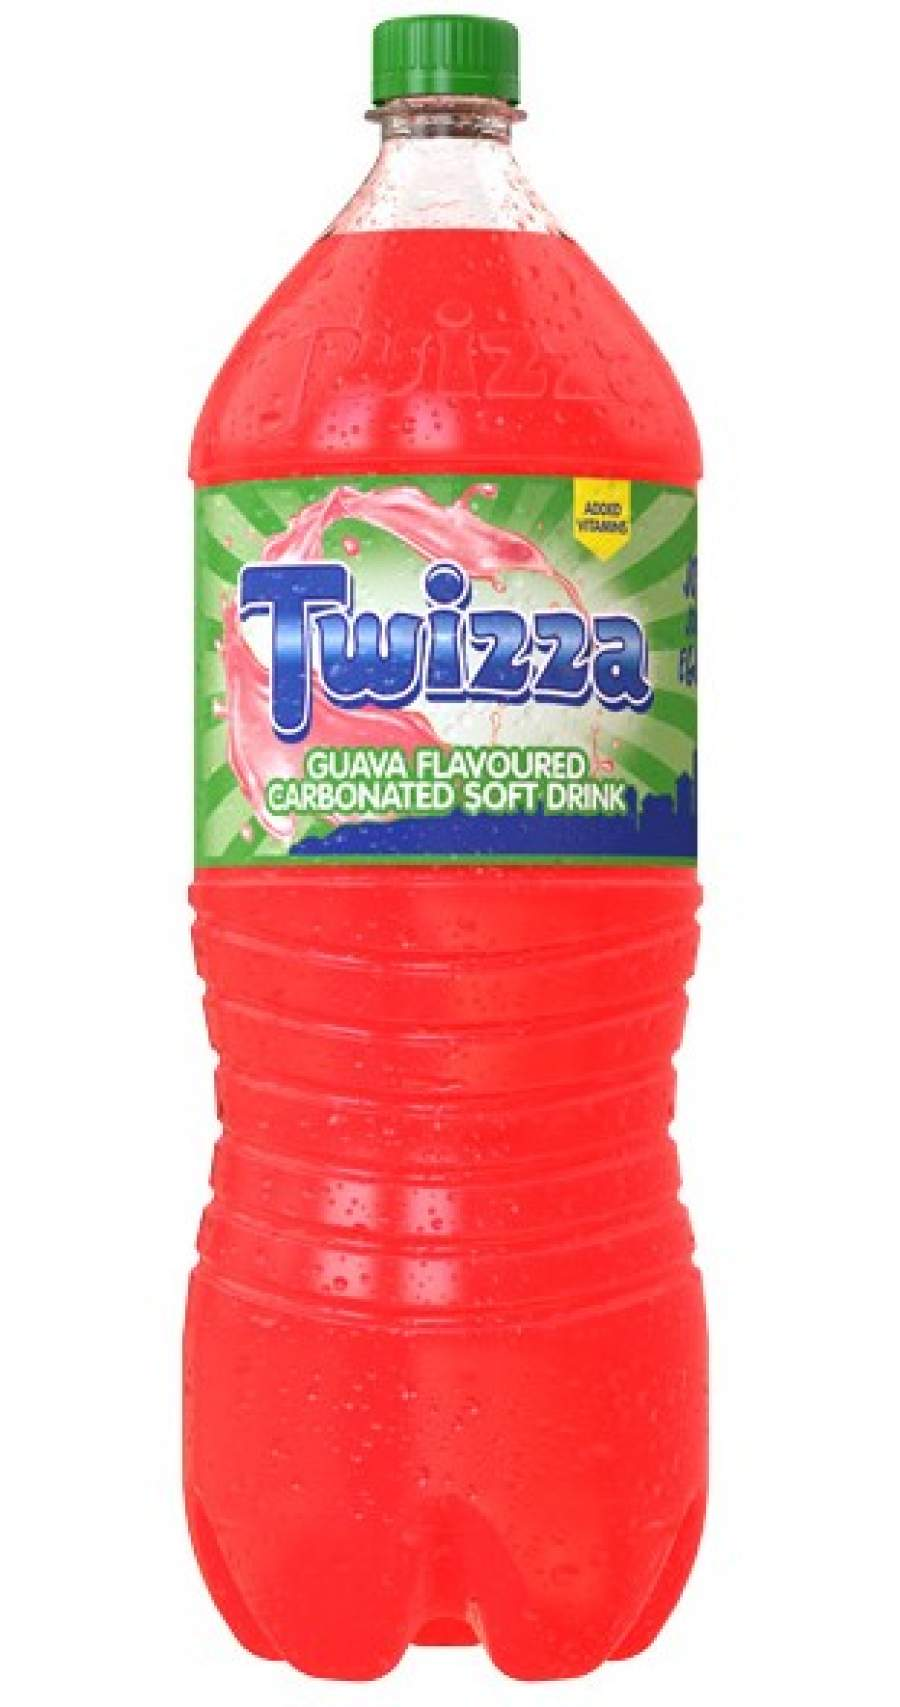 New Twizza Guava, available in store now